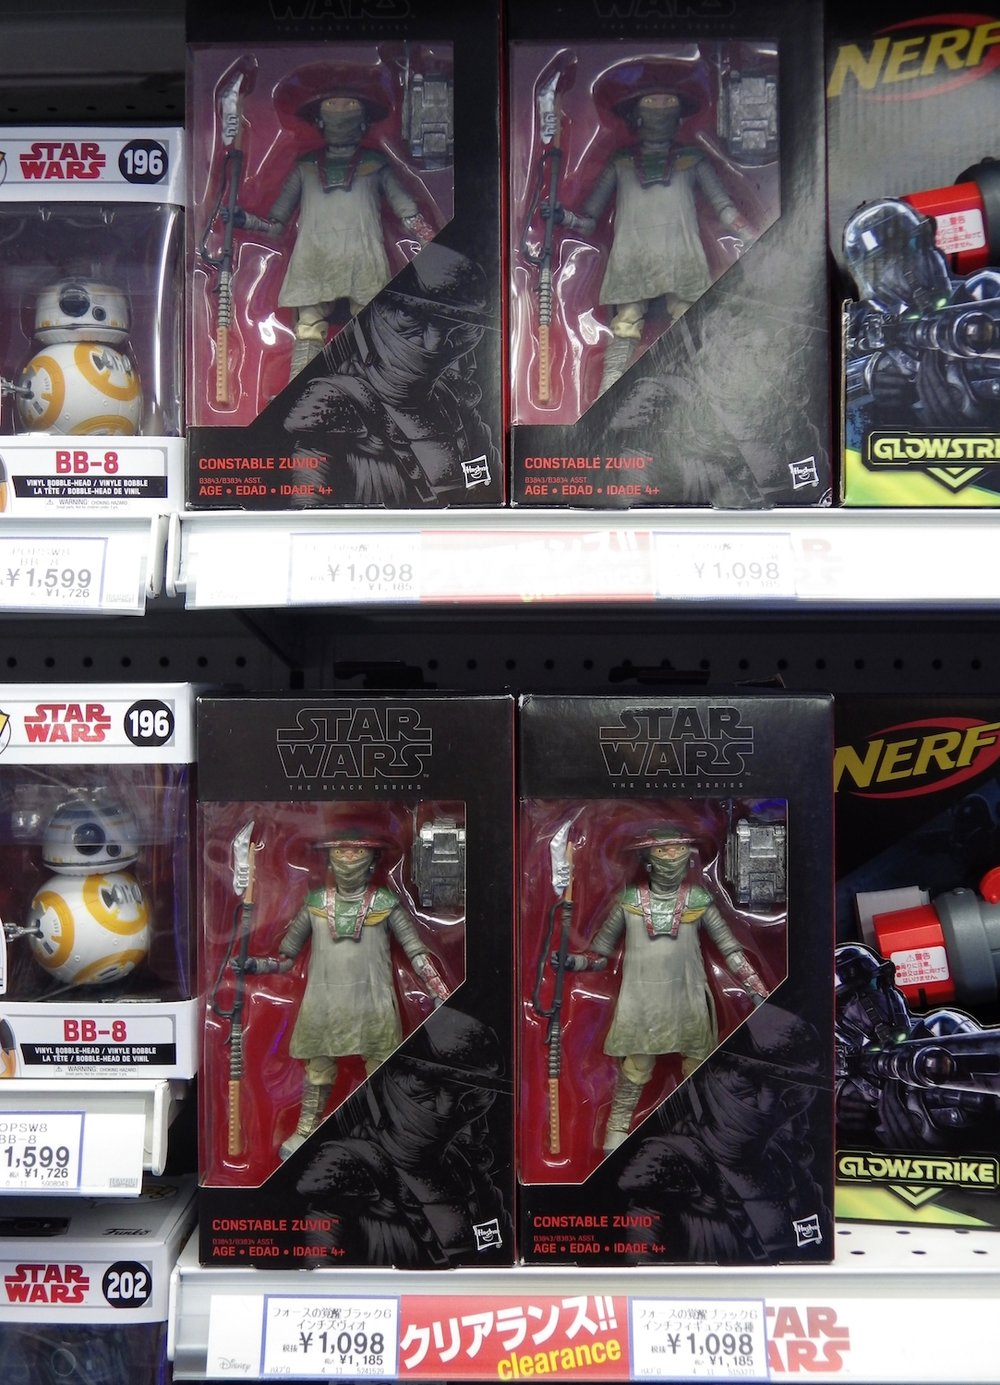 Constable Zuvio figures, still sitting on the shelf two years later.